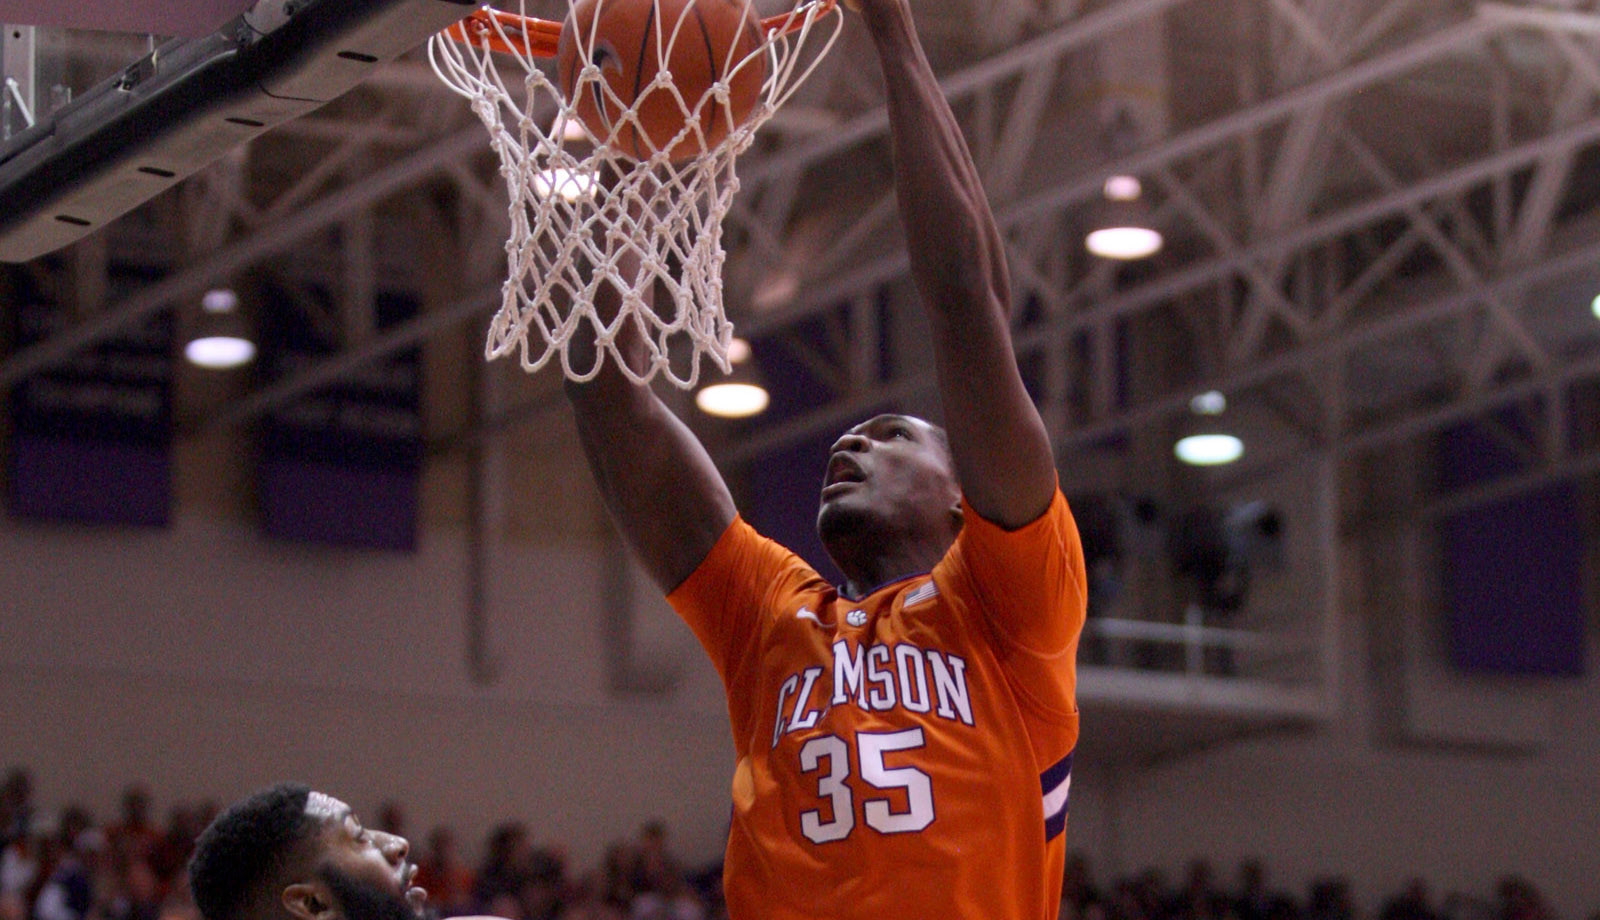 Exclusive: Balanced Offensive Attack for Tigers in Furman Win